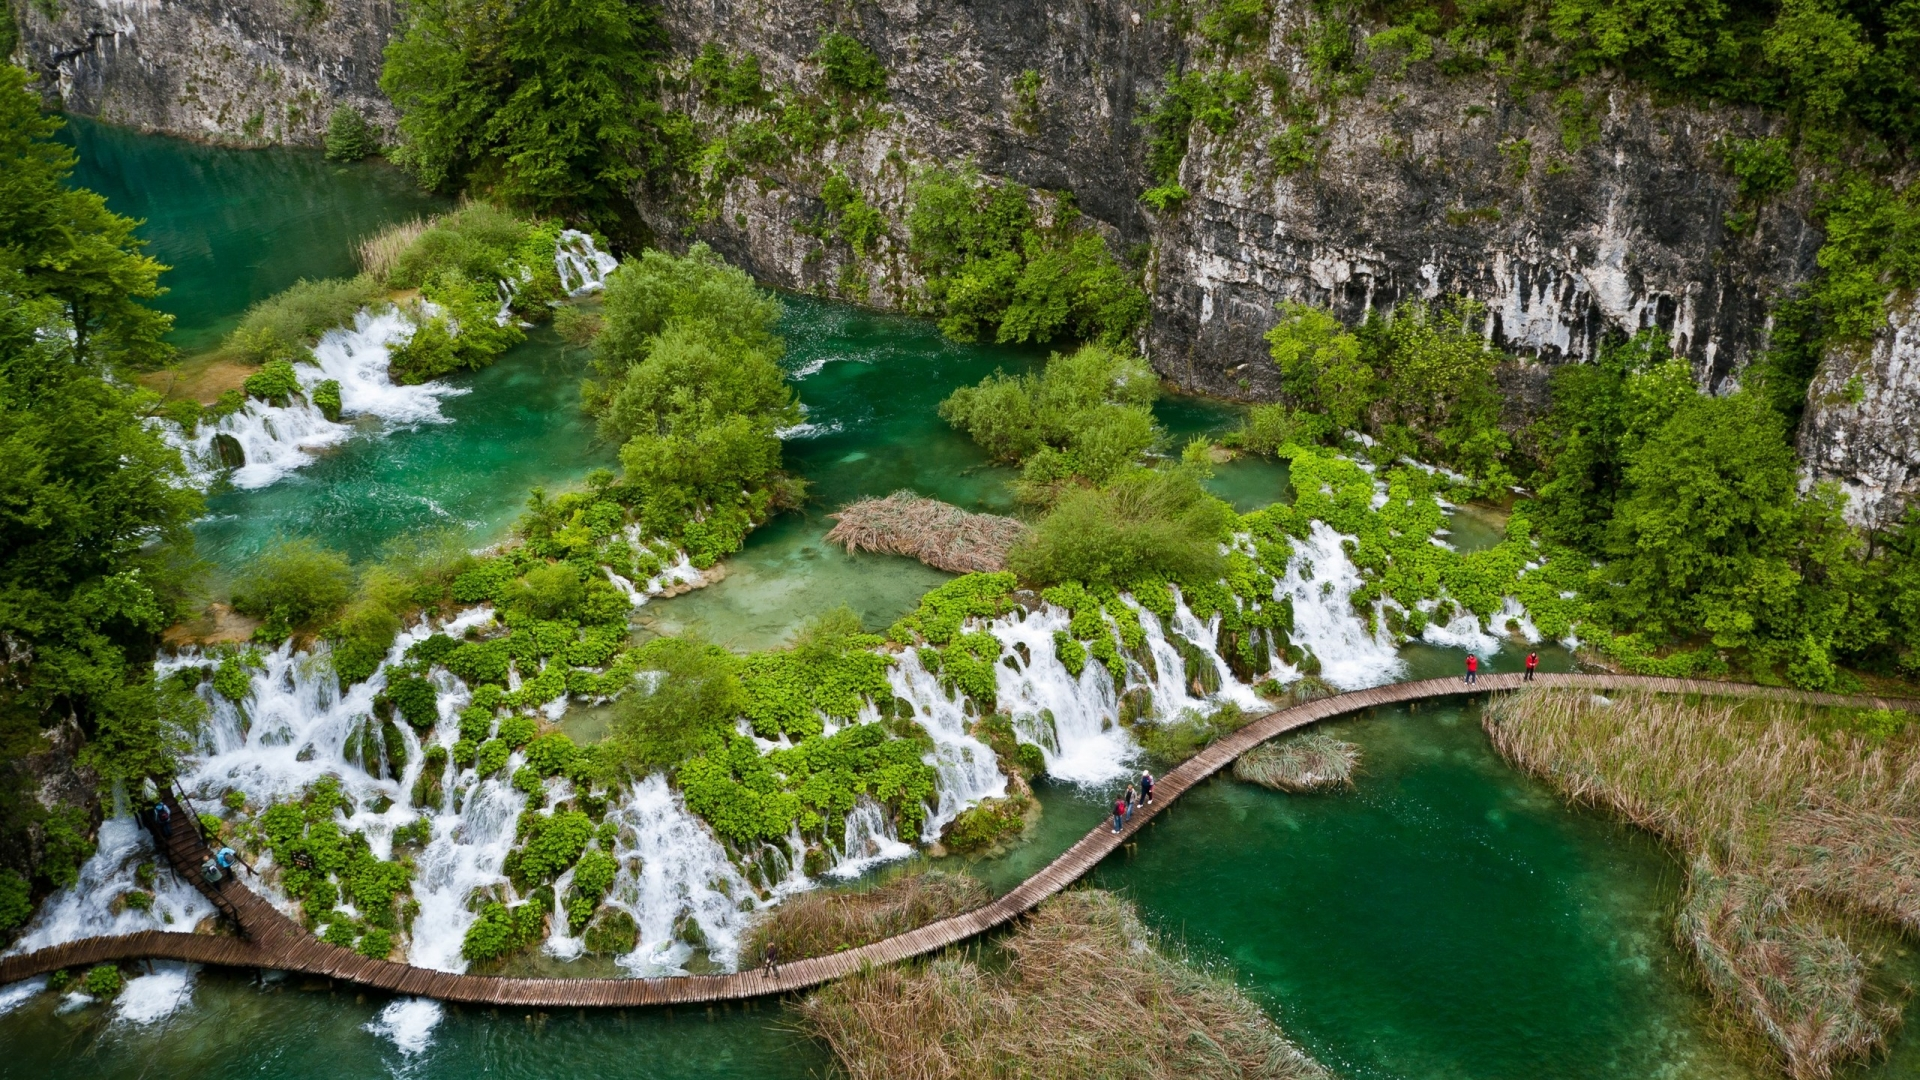 D Hd Wallpapers 1366x768 Tropical Green River Amazing Paradise Landscape